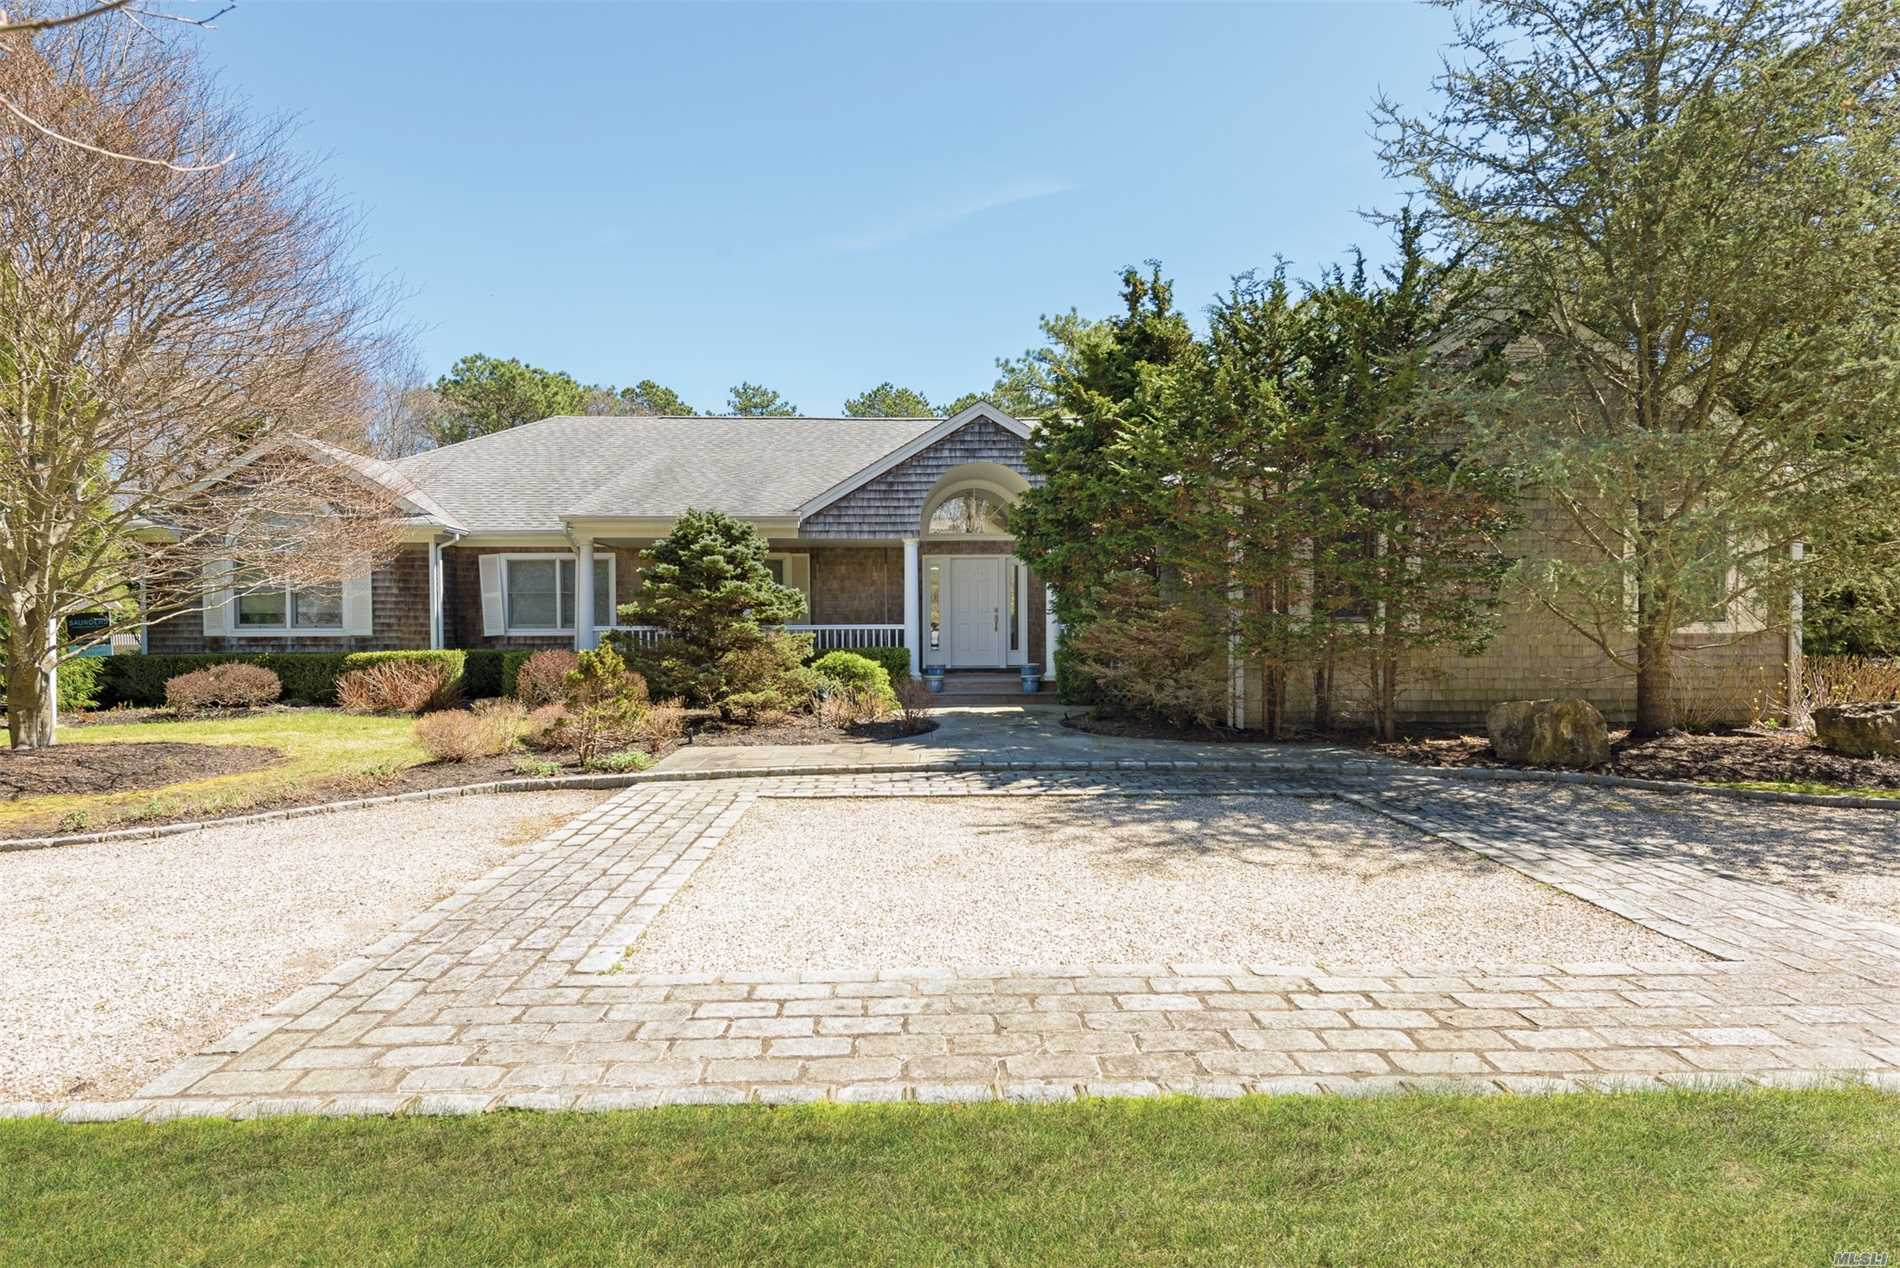 Well maintained, bright airy interior, conveniently located. Chef's kitchen open to the LR/DR. En-suite master with deck/pool access. Three additional bedrooms plus den and finished lower level. Enjoy the sunny yard with large deck, outdoor shower and 20x40 heated pool. Make the most of your summer...escape to Quogue!